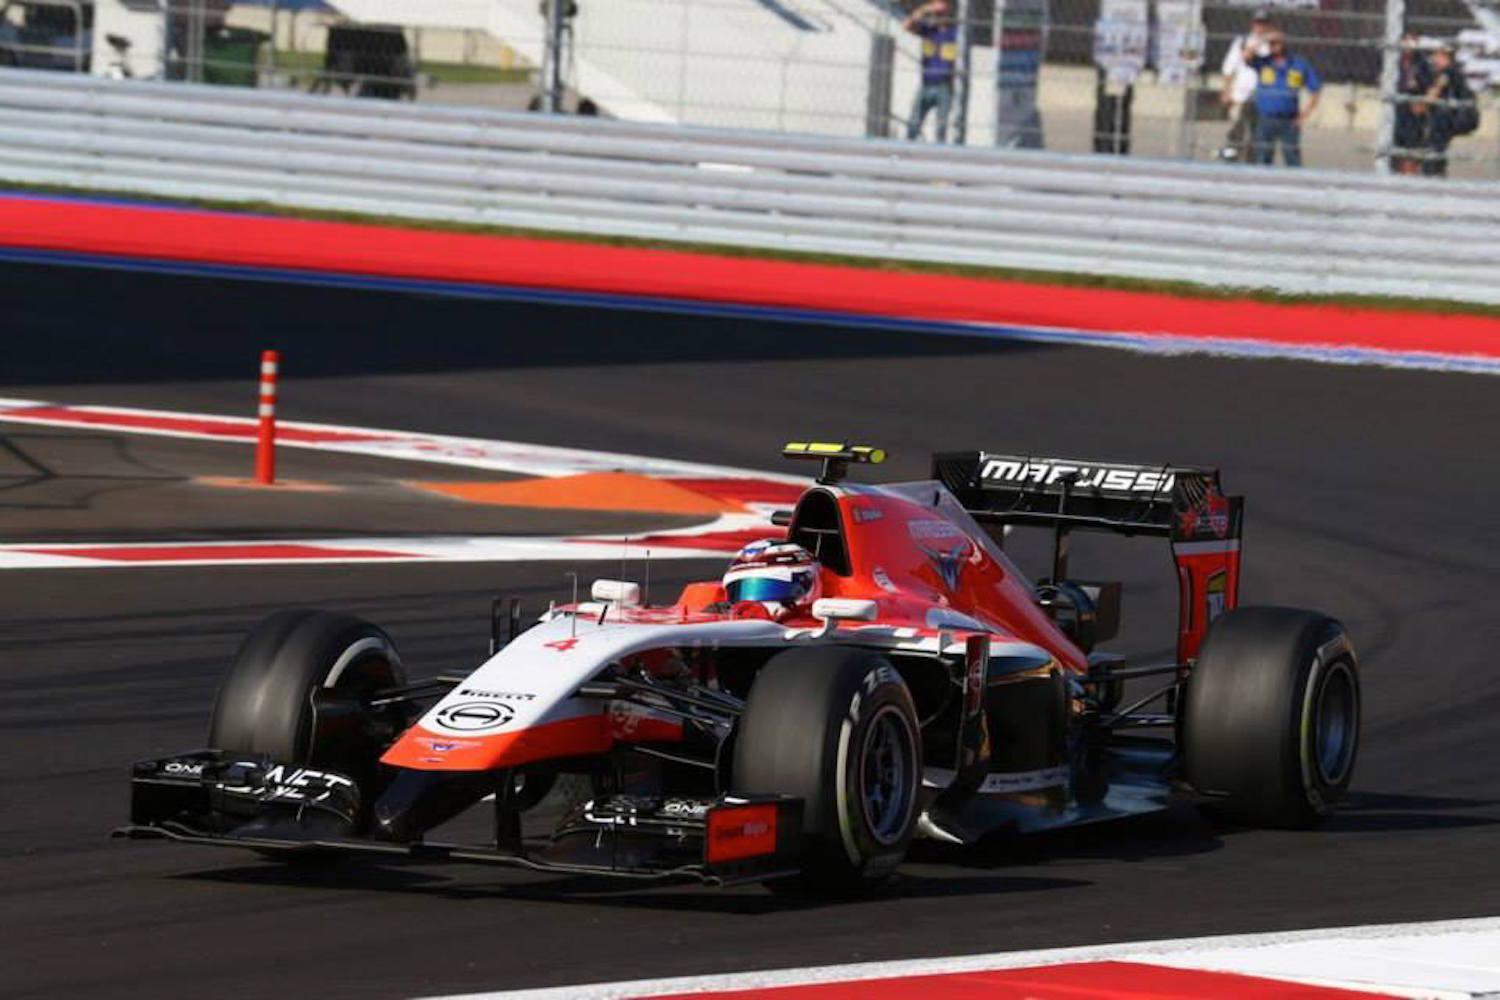 Marrusia F1 team 'making huge strides' to be ready for the ...